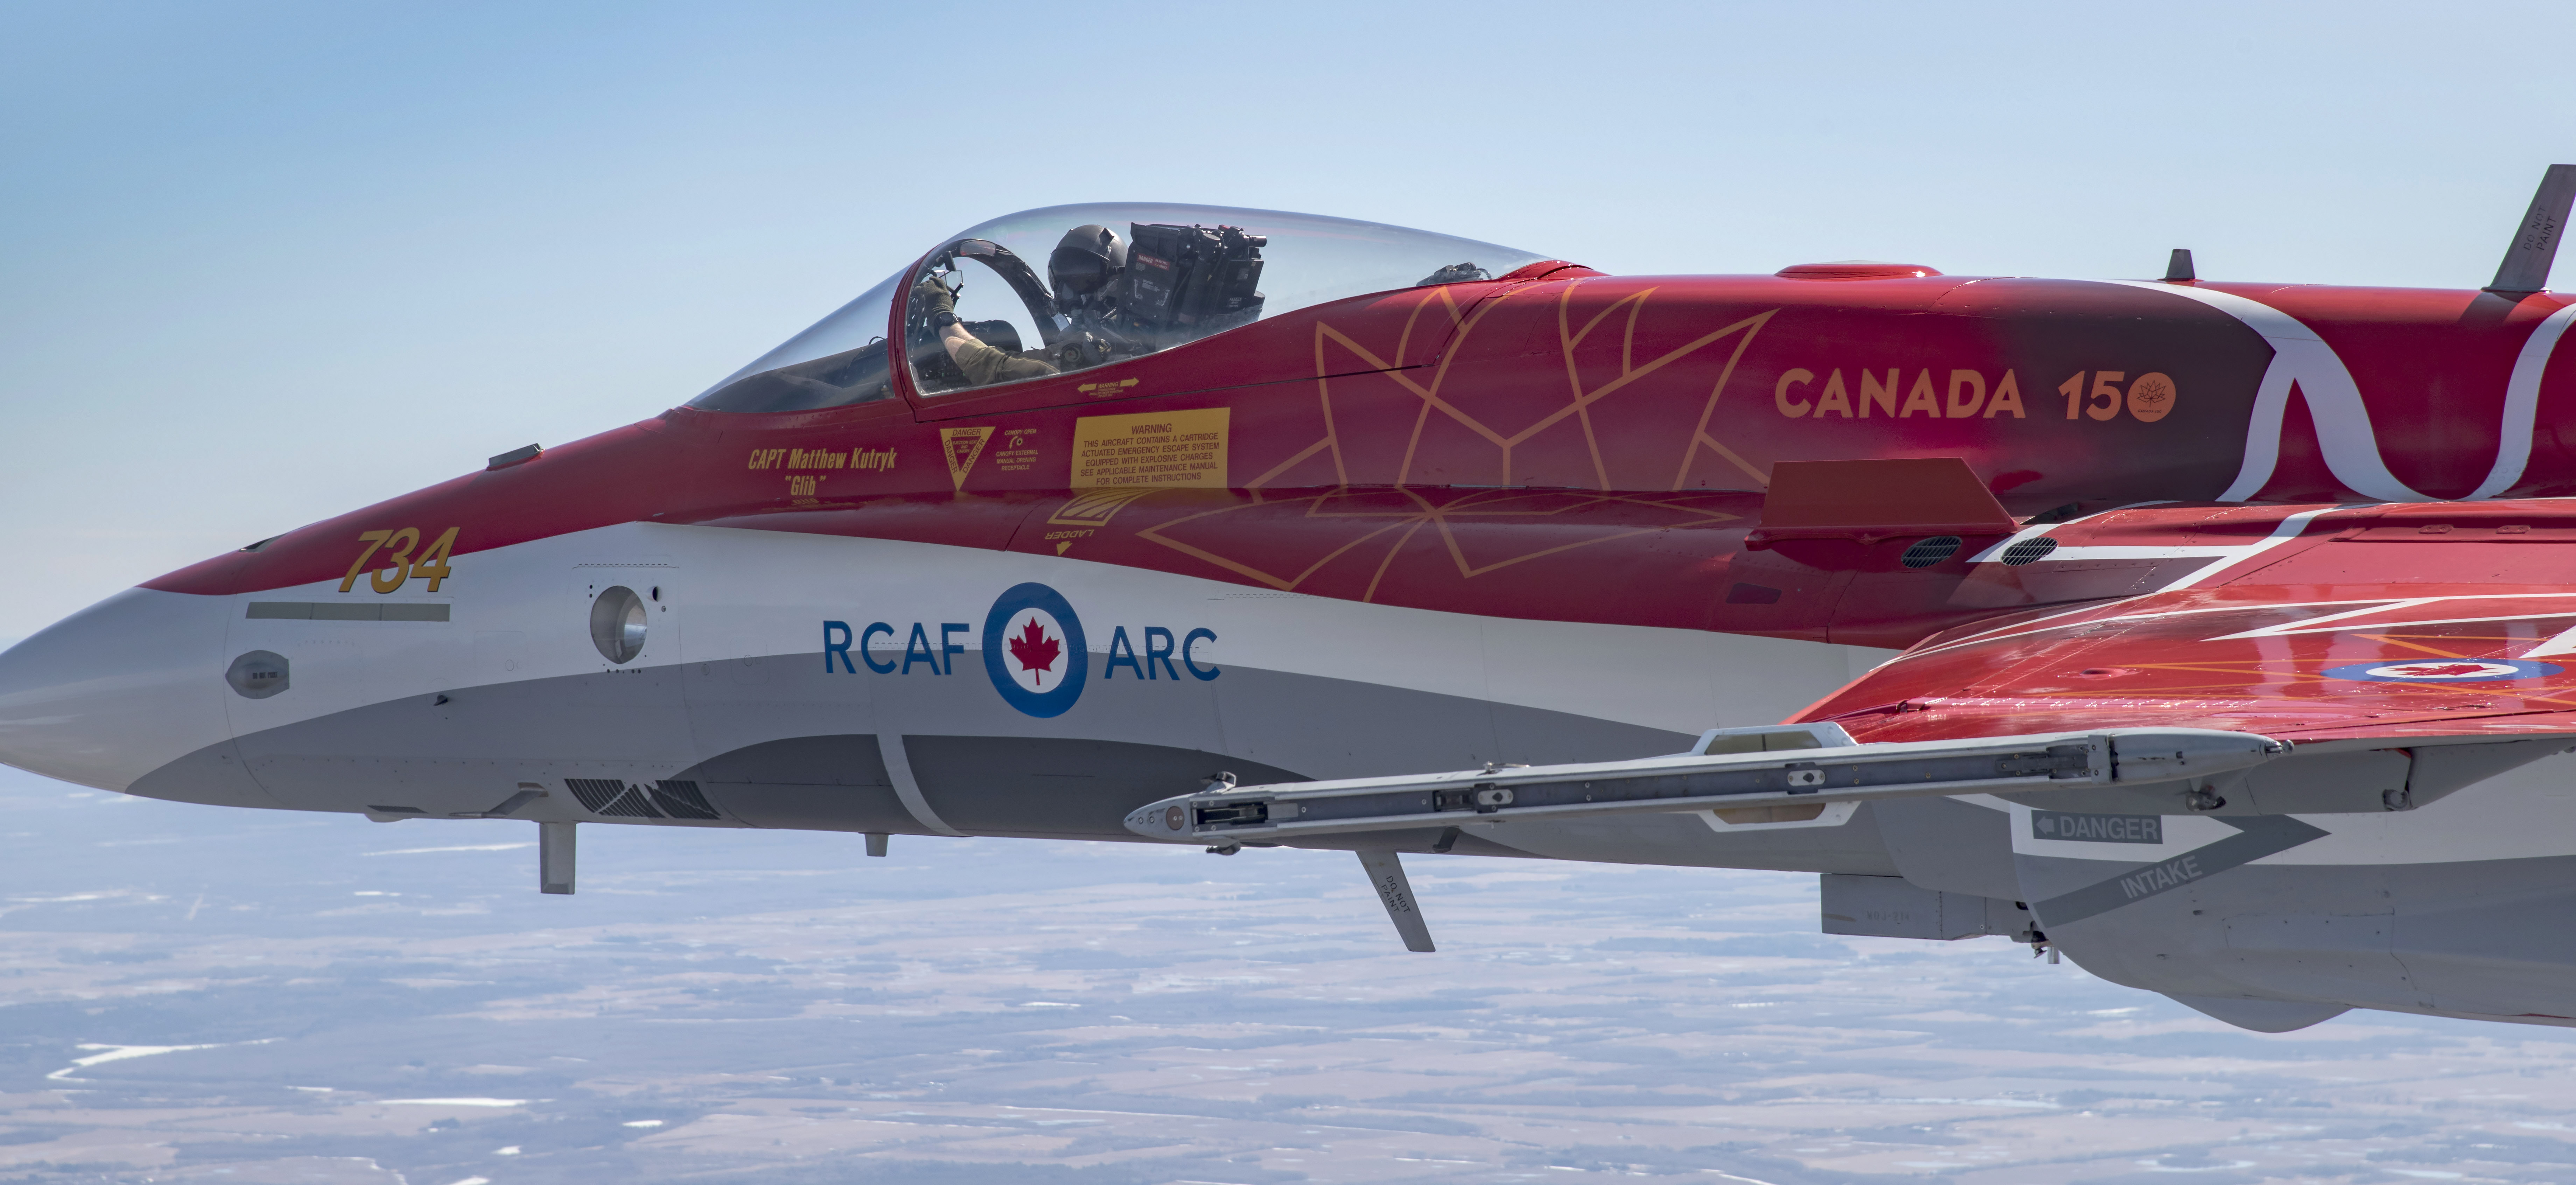 The 2017 CF-18 Demonstration Hornet. PHOTO: Corporal Manuela Berger, CK01-2017-0278-012